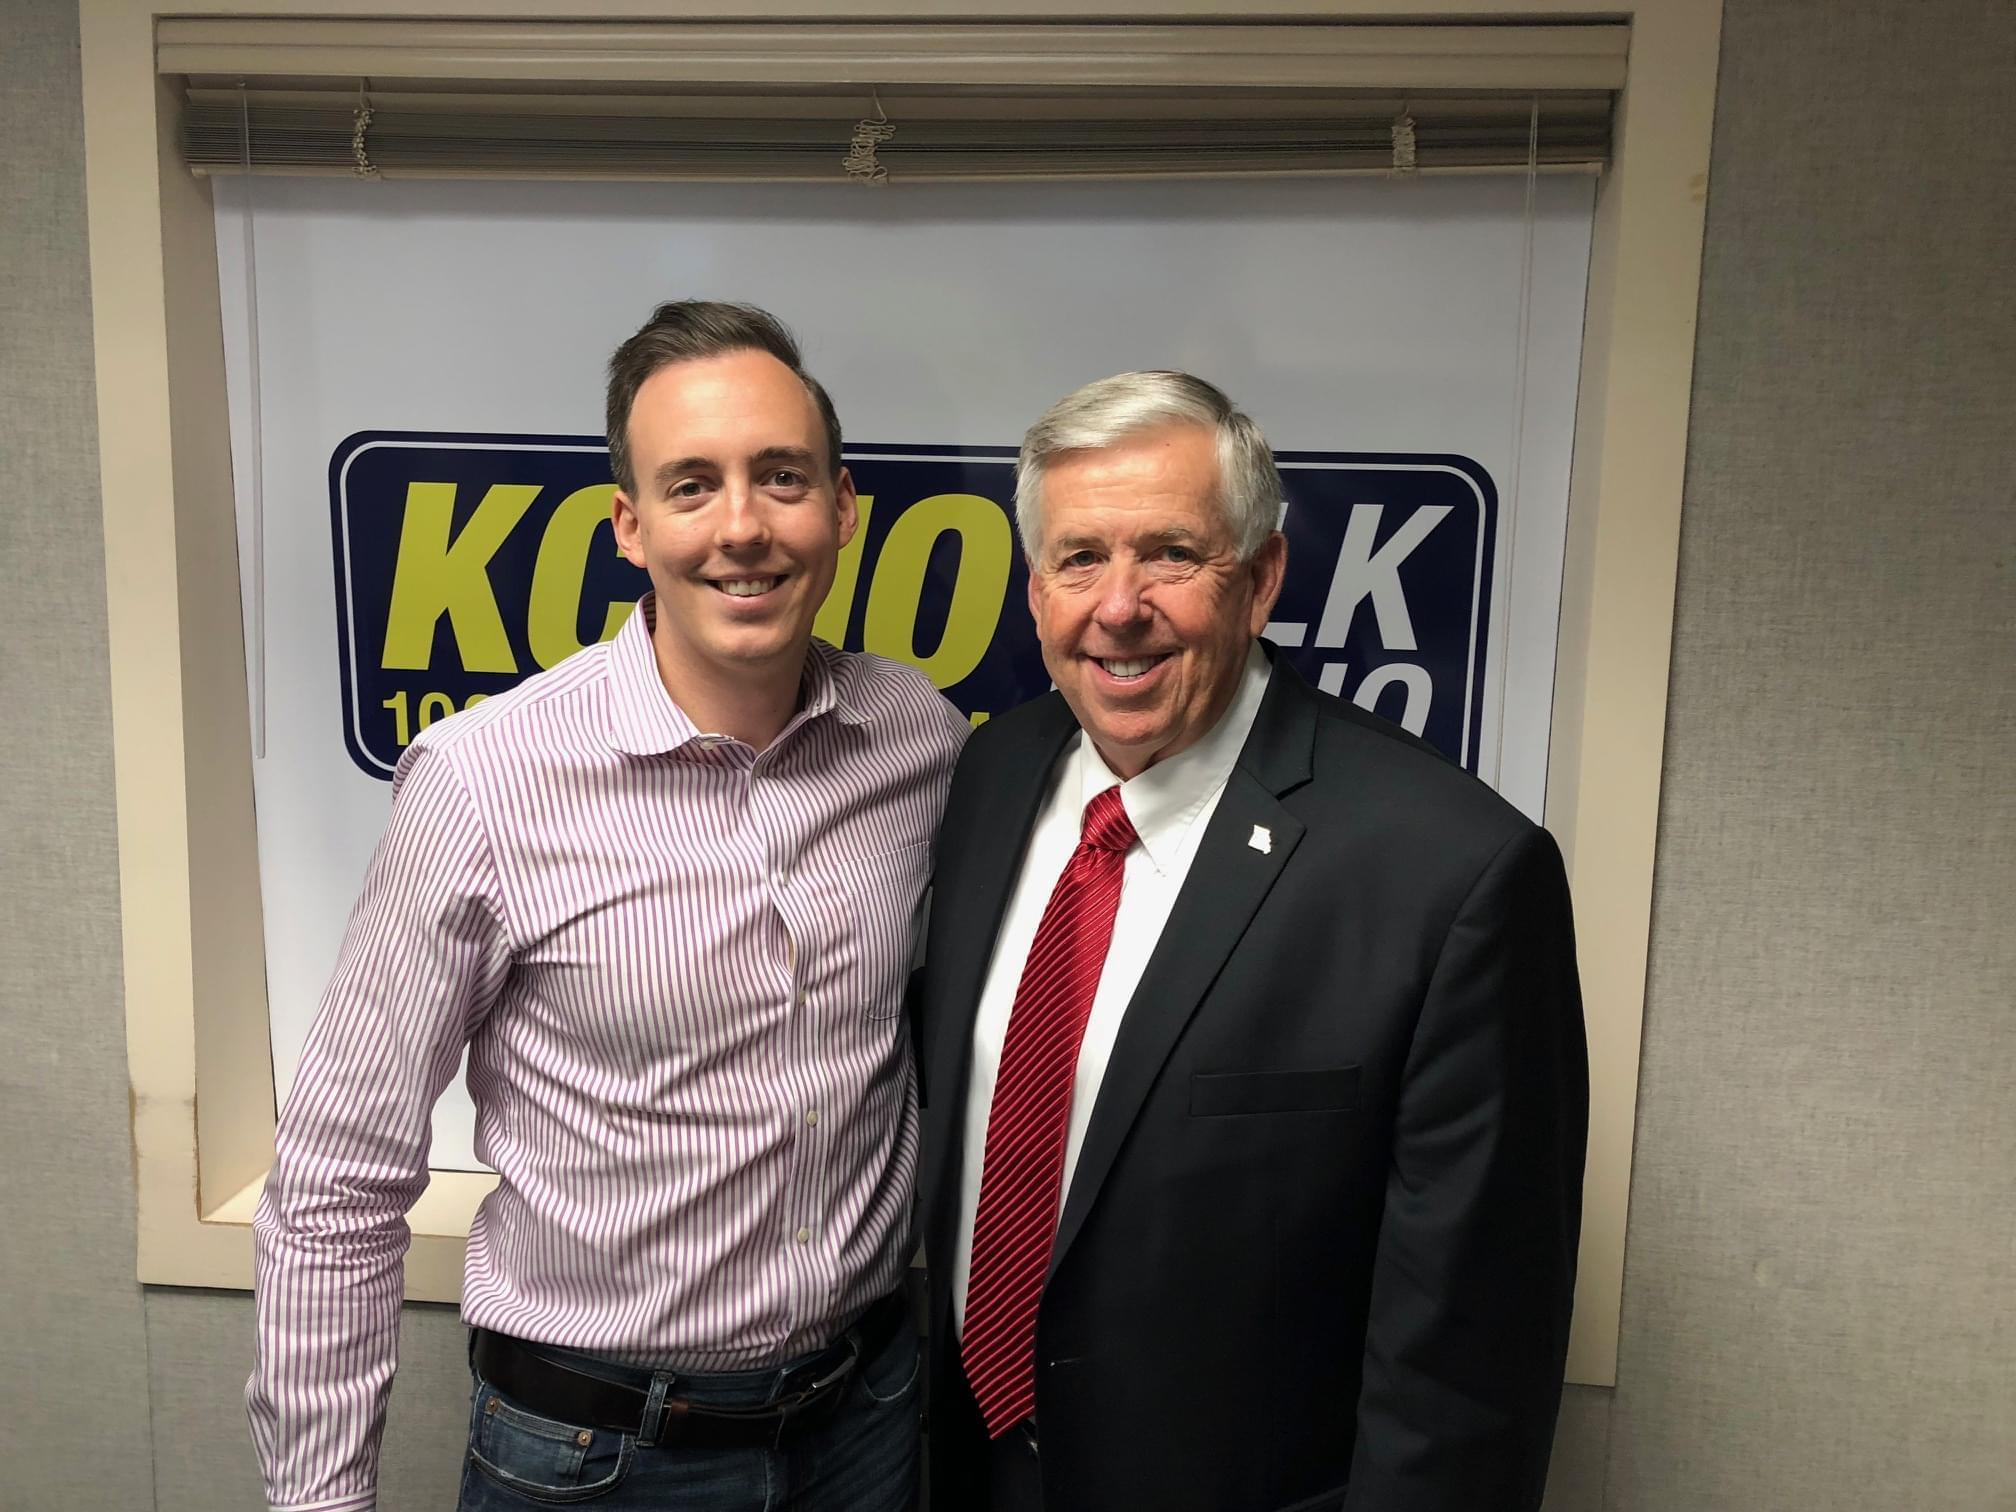 Mike Parson Joins Pete Mundo To Talk About The Governor Race